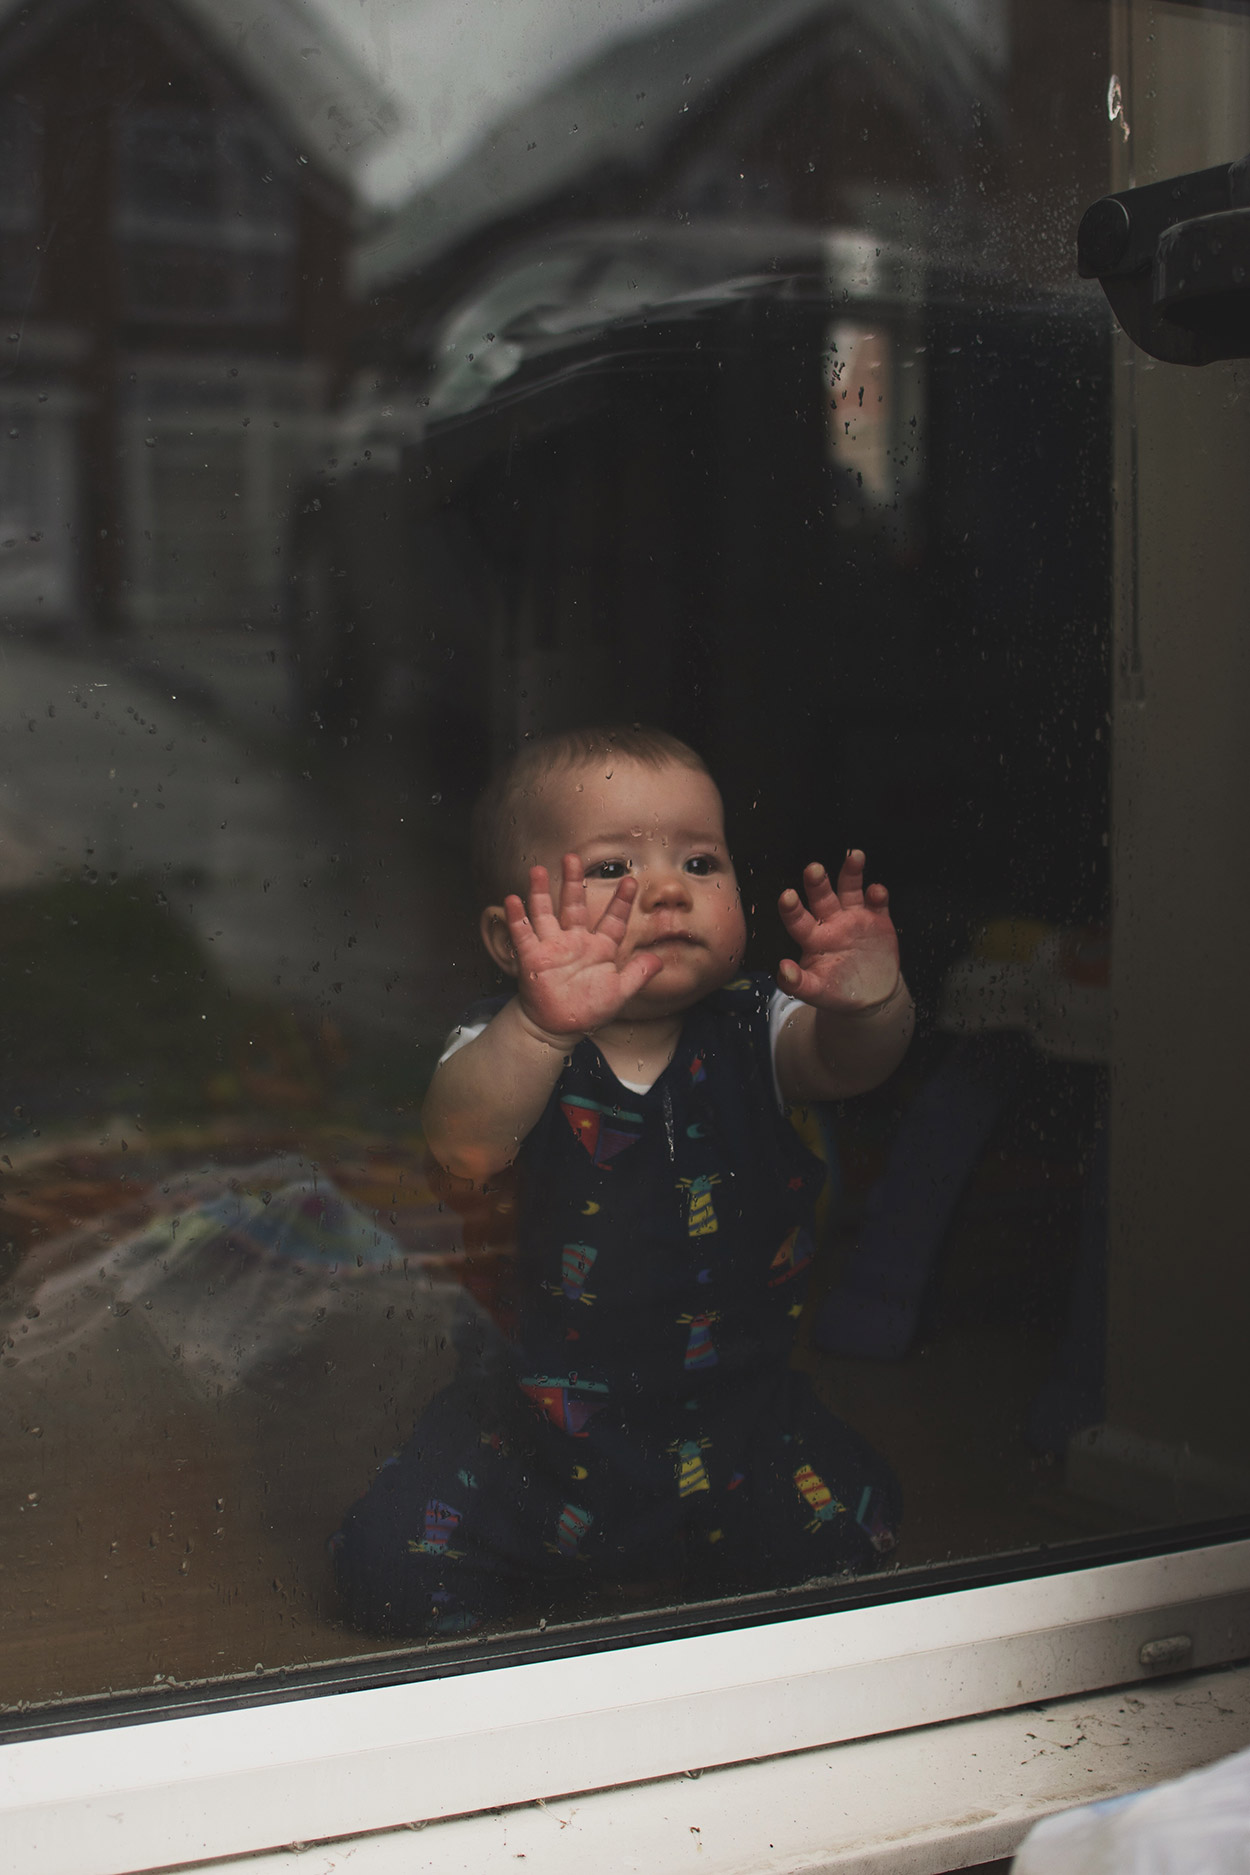 Baby Jesse Blue at 10 months old - Baby boy wearing Piccalilly lighthouse dungarees looking out of the window at Mother